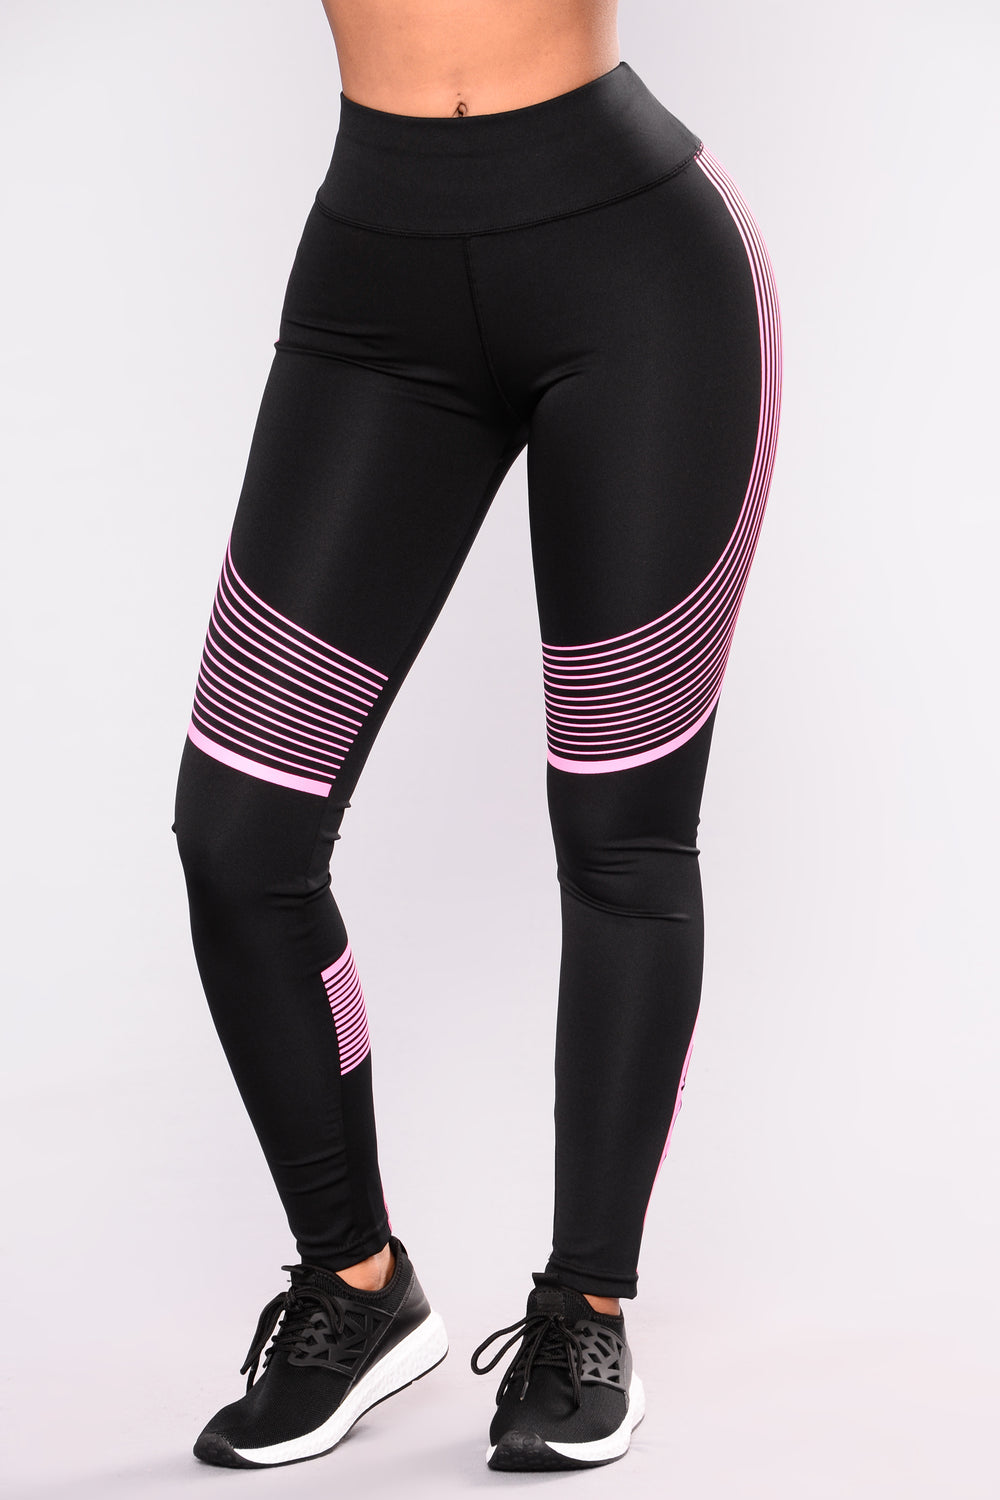 Get a pair of women's leggings for every season and every reason. Shop today! ADIDAS 3 Stripes Pink Womens Leggings $ ADIDAS Trefoil Maroon Womens Leggings $ ADIDAS Pineapple Womens Leggings FULL TILT High Waisted Black Womens Leggings $ More Colors. FULL TILT High Waisted Charcoal Womens Leggings .